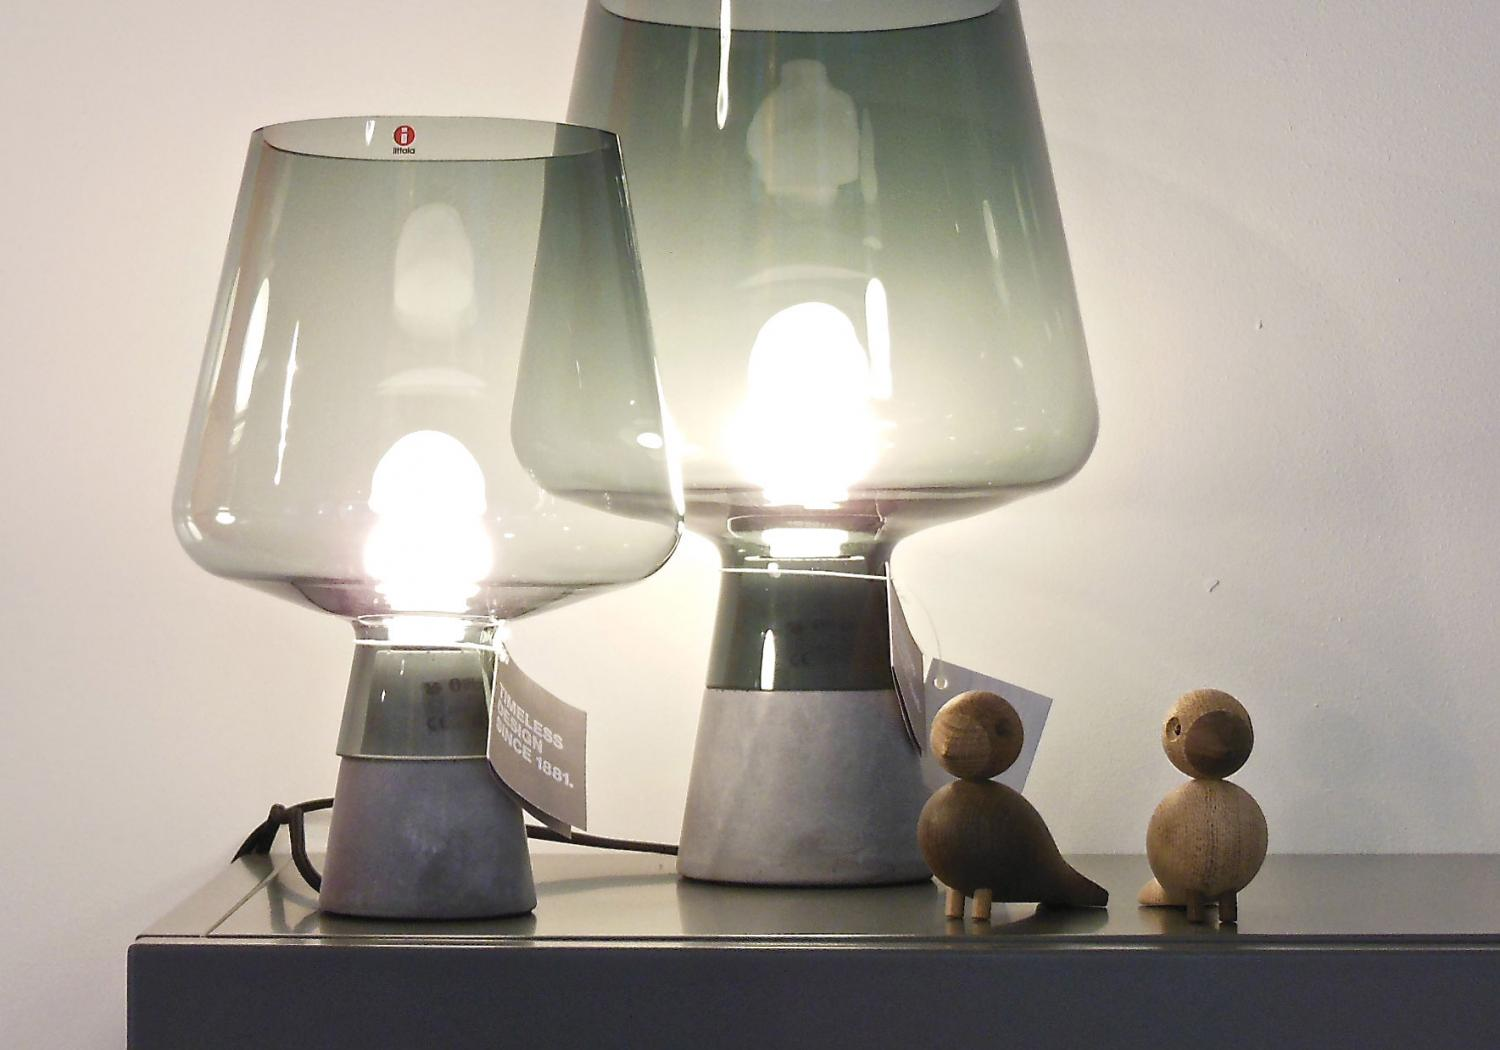 Iittala / Kay Bojesen - Leimu table lamp by Magnus Pettersen and Lovebirds by Kay Bojesen